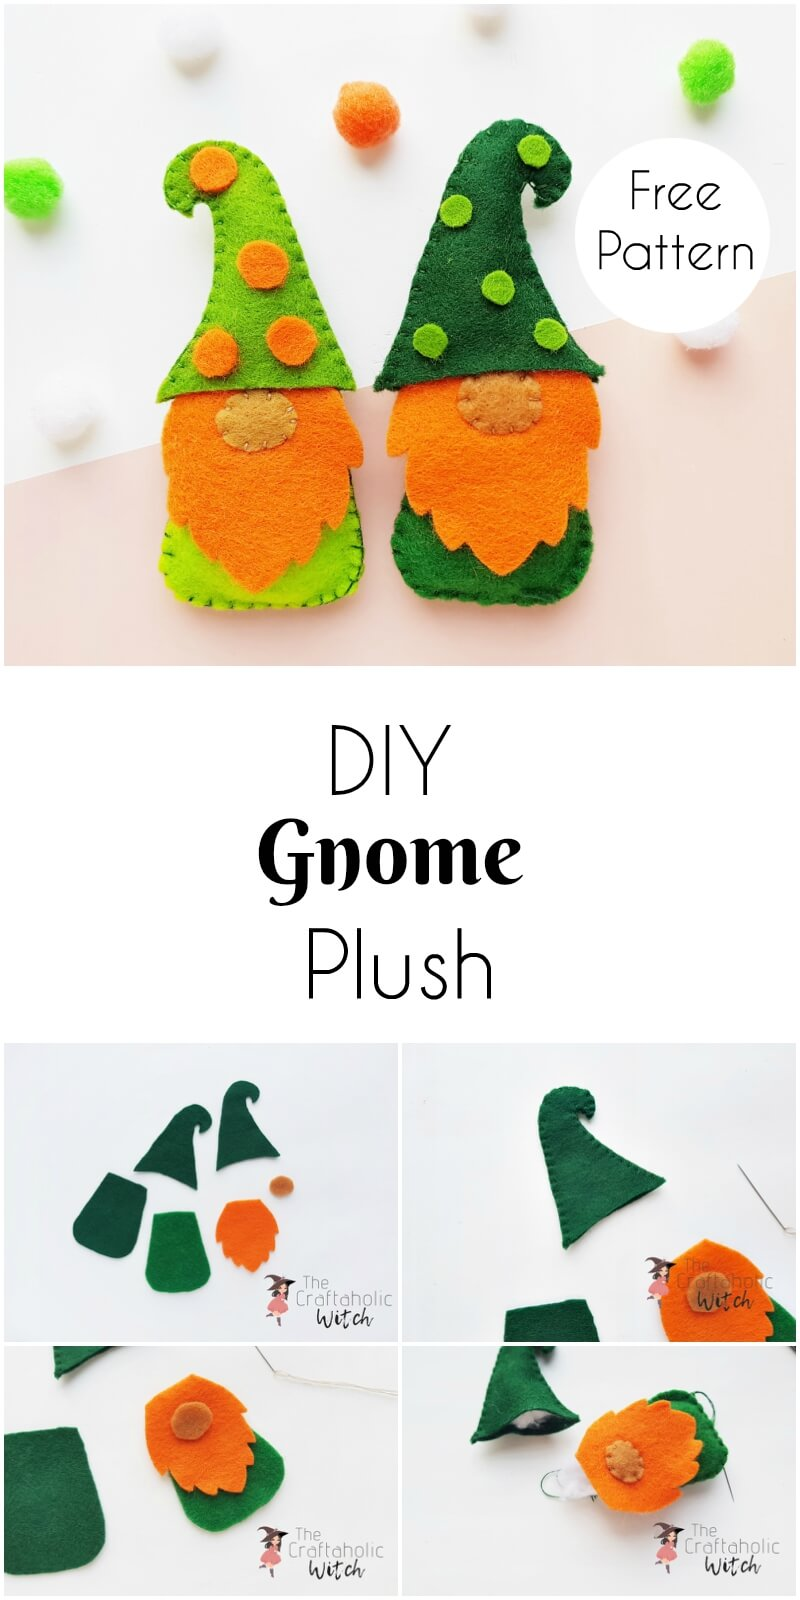 DIY Gnome Plush - Learn How to Make a Gnome Step by Step